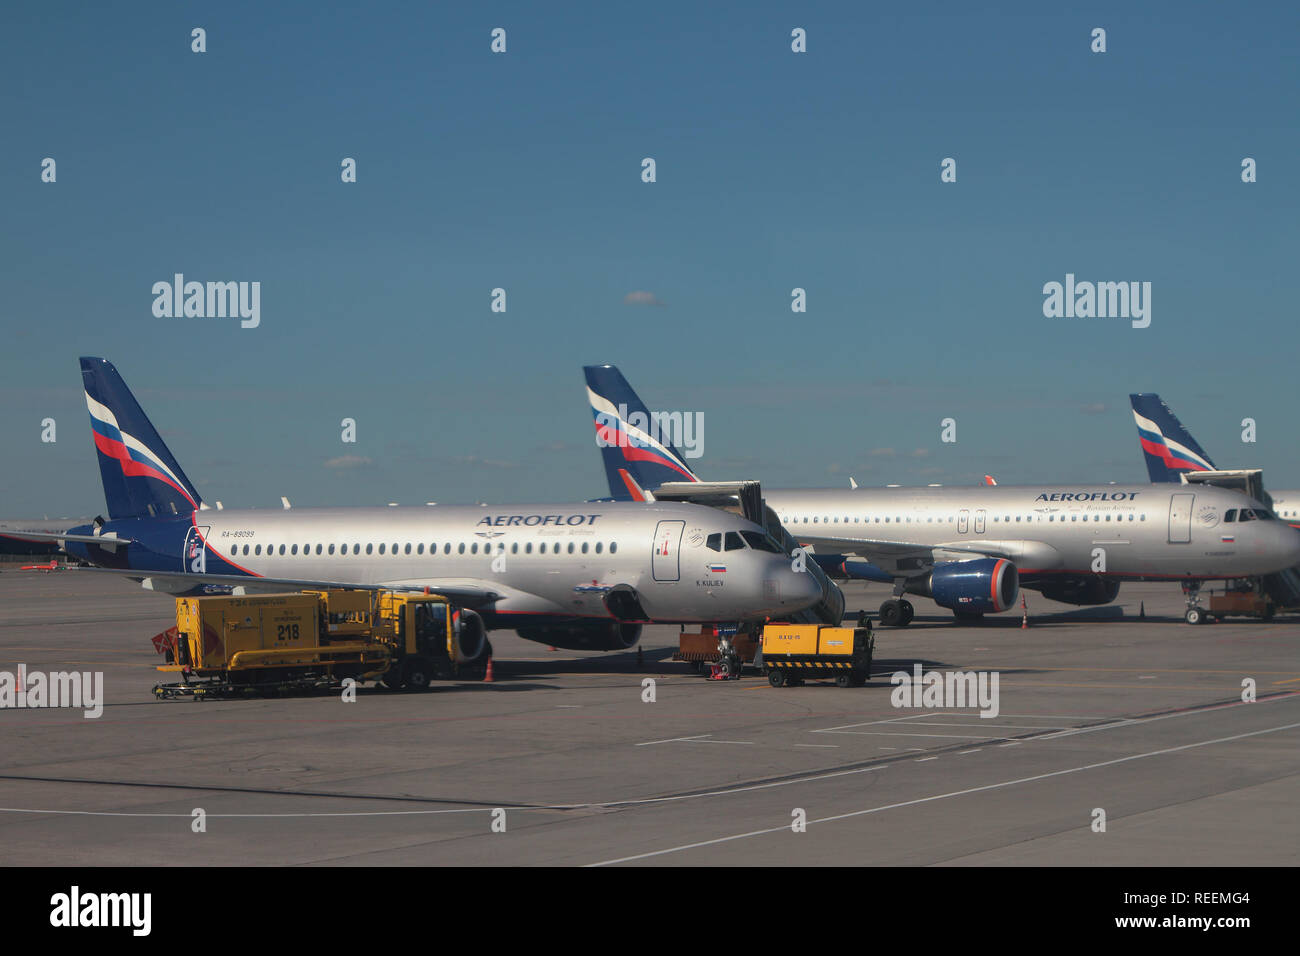 Sheremetyevo, Moscow, Russia - Sep 14, 2018: Plane 'K.Kuliyev' on parking at airport - Stock Image